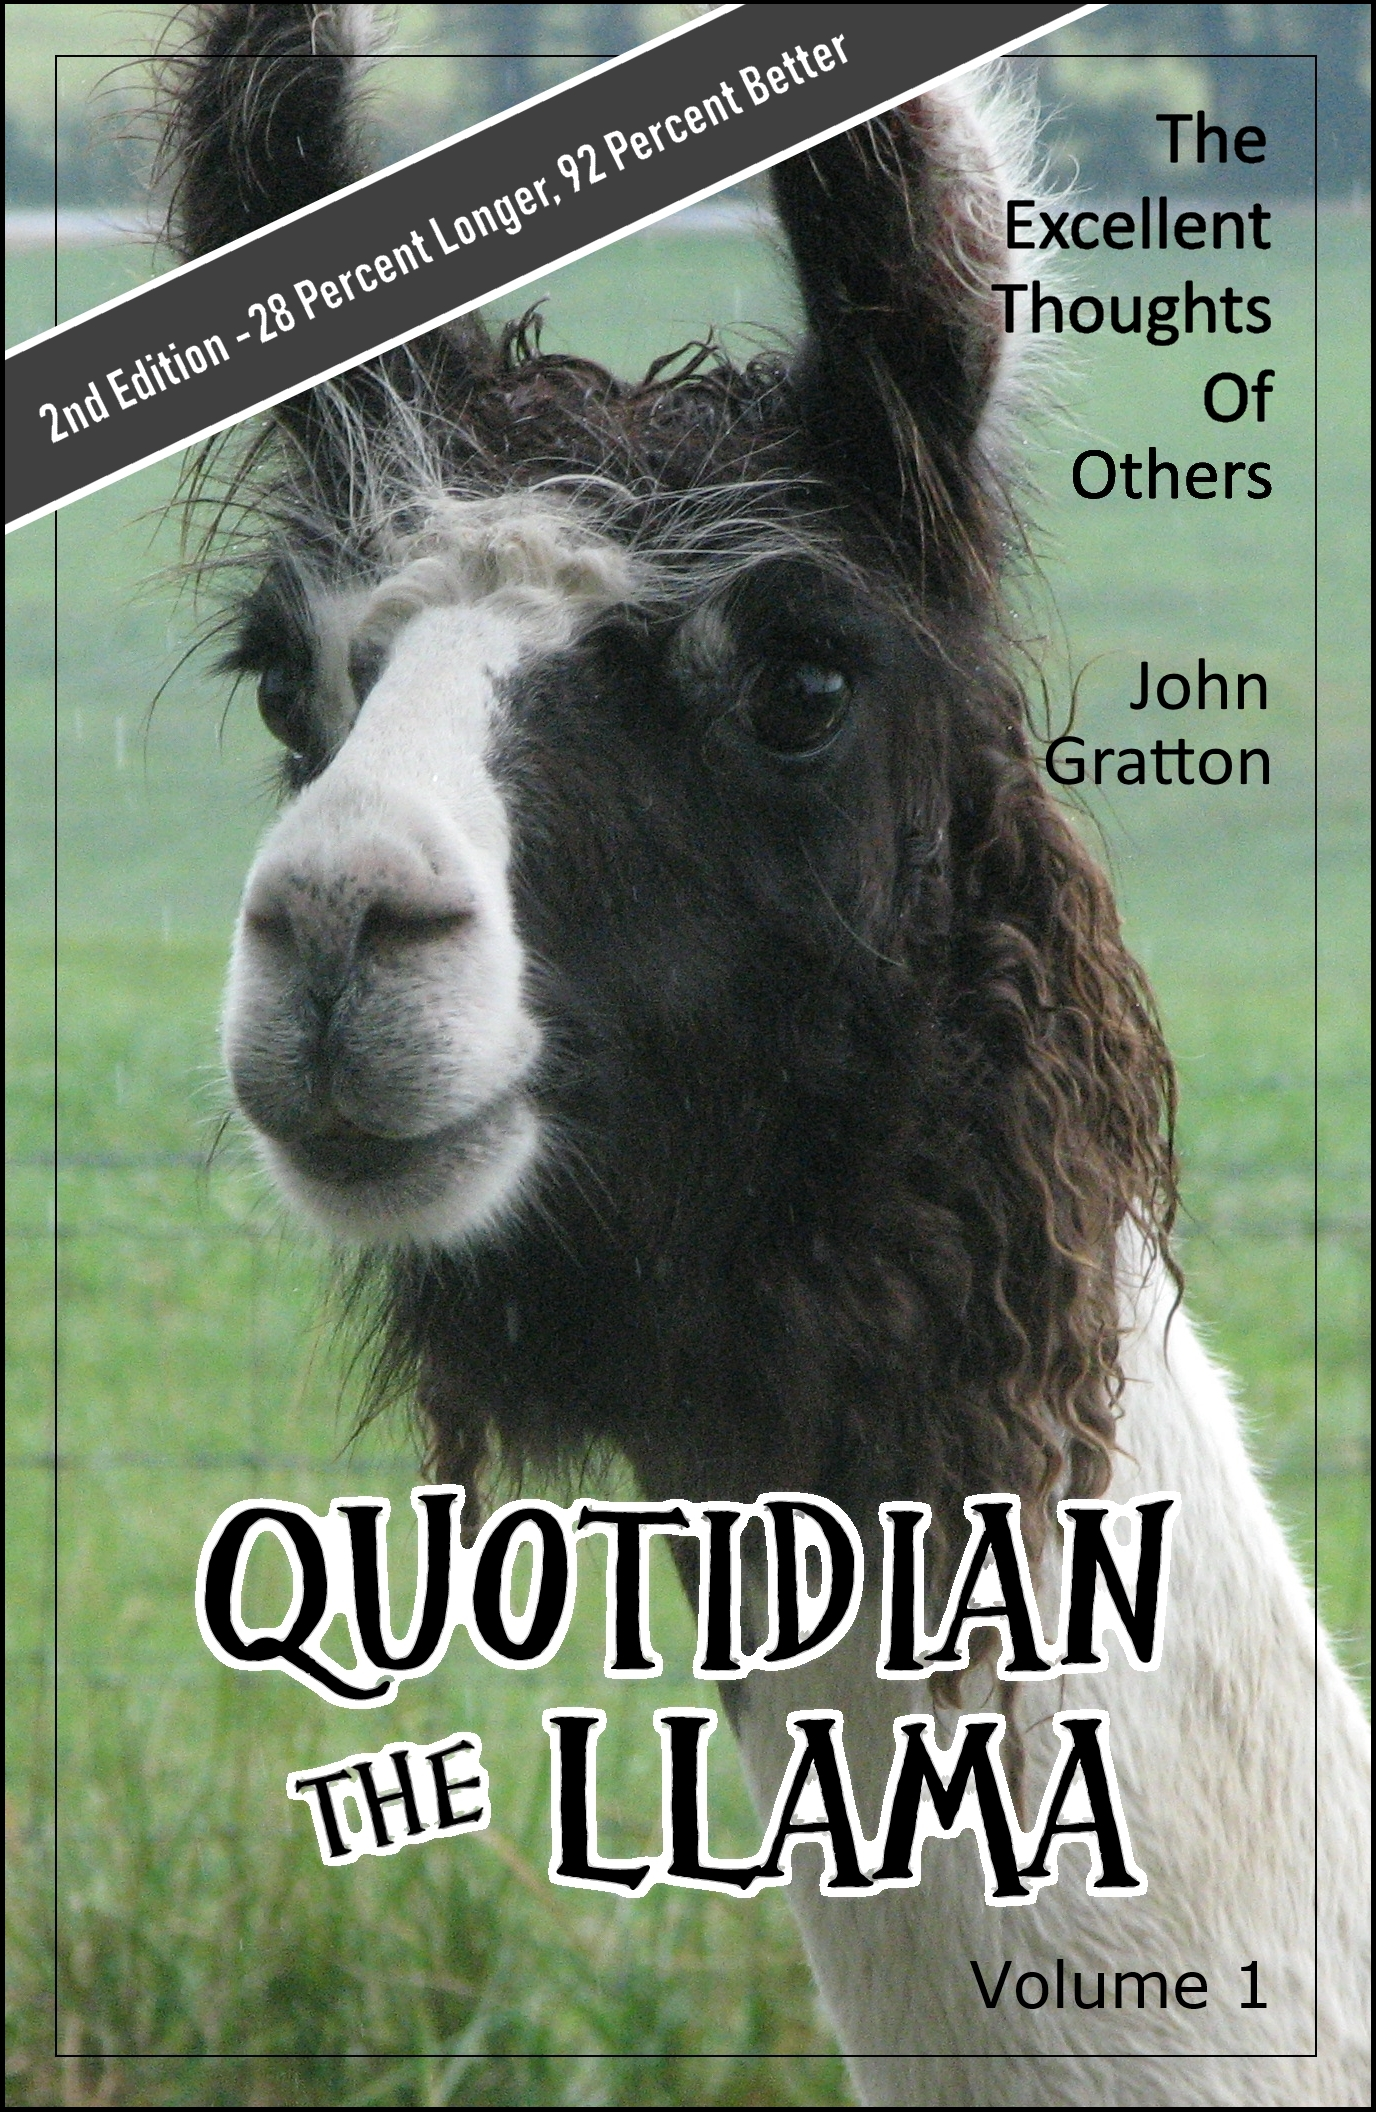 Quotidian the Llama